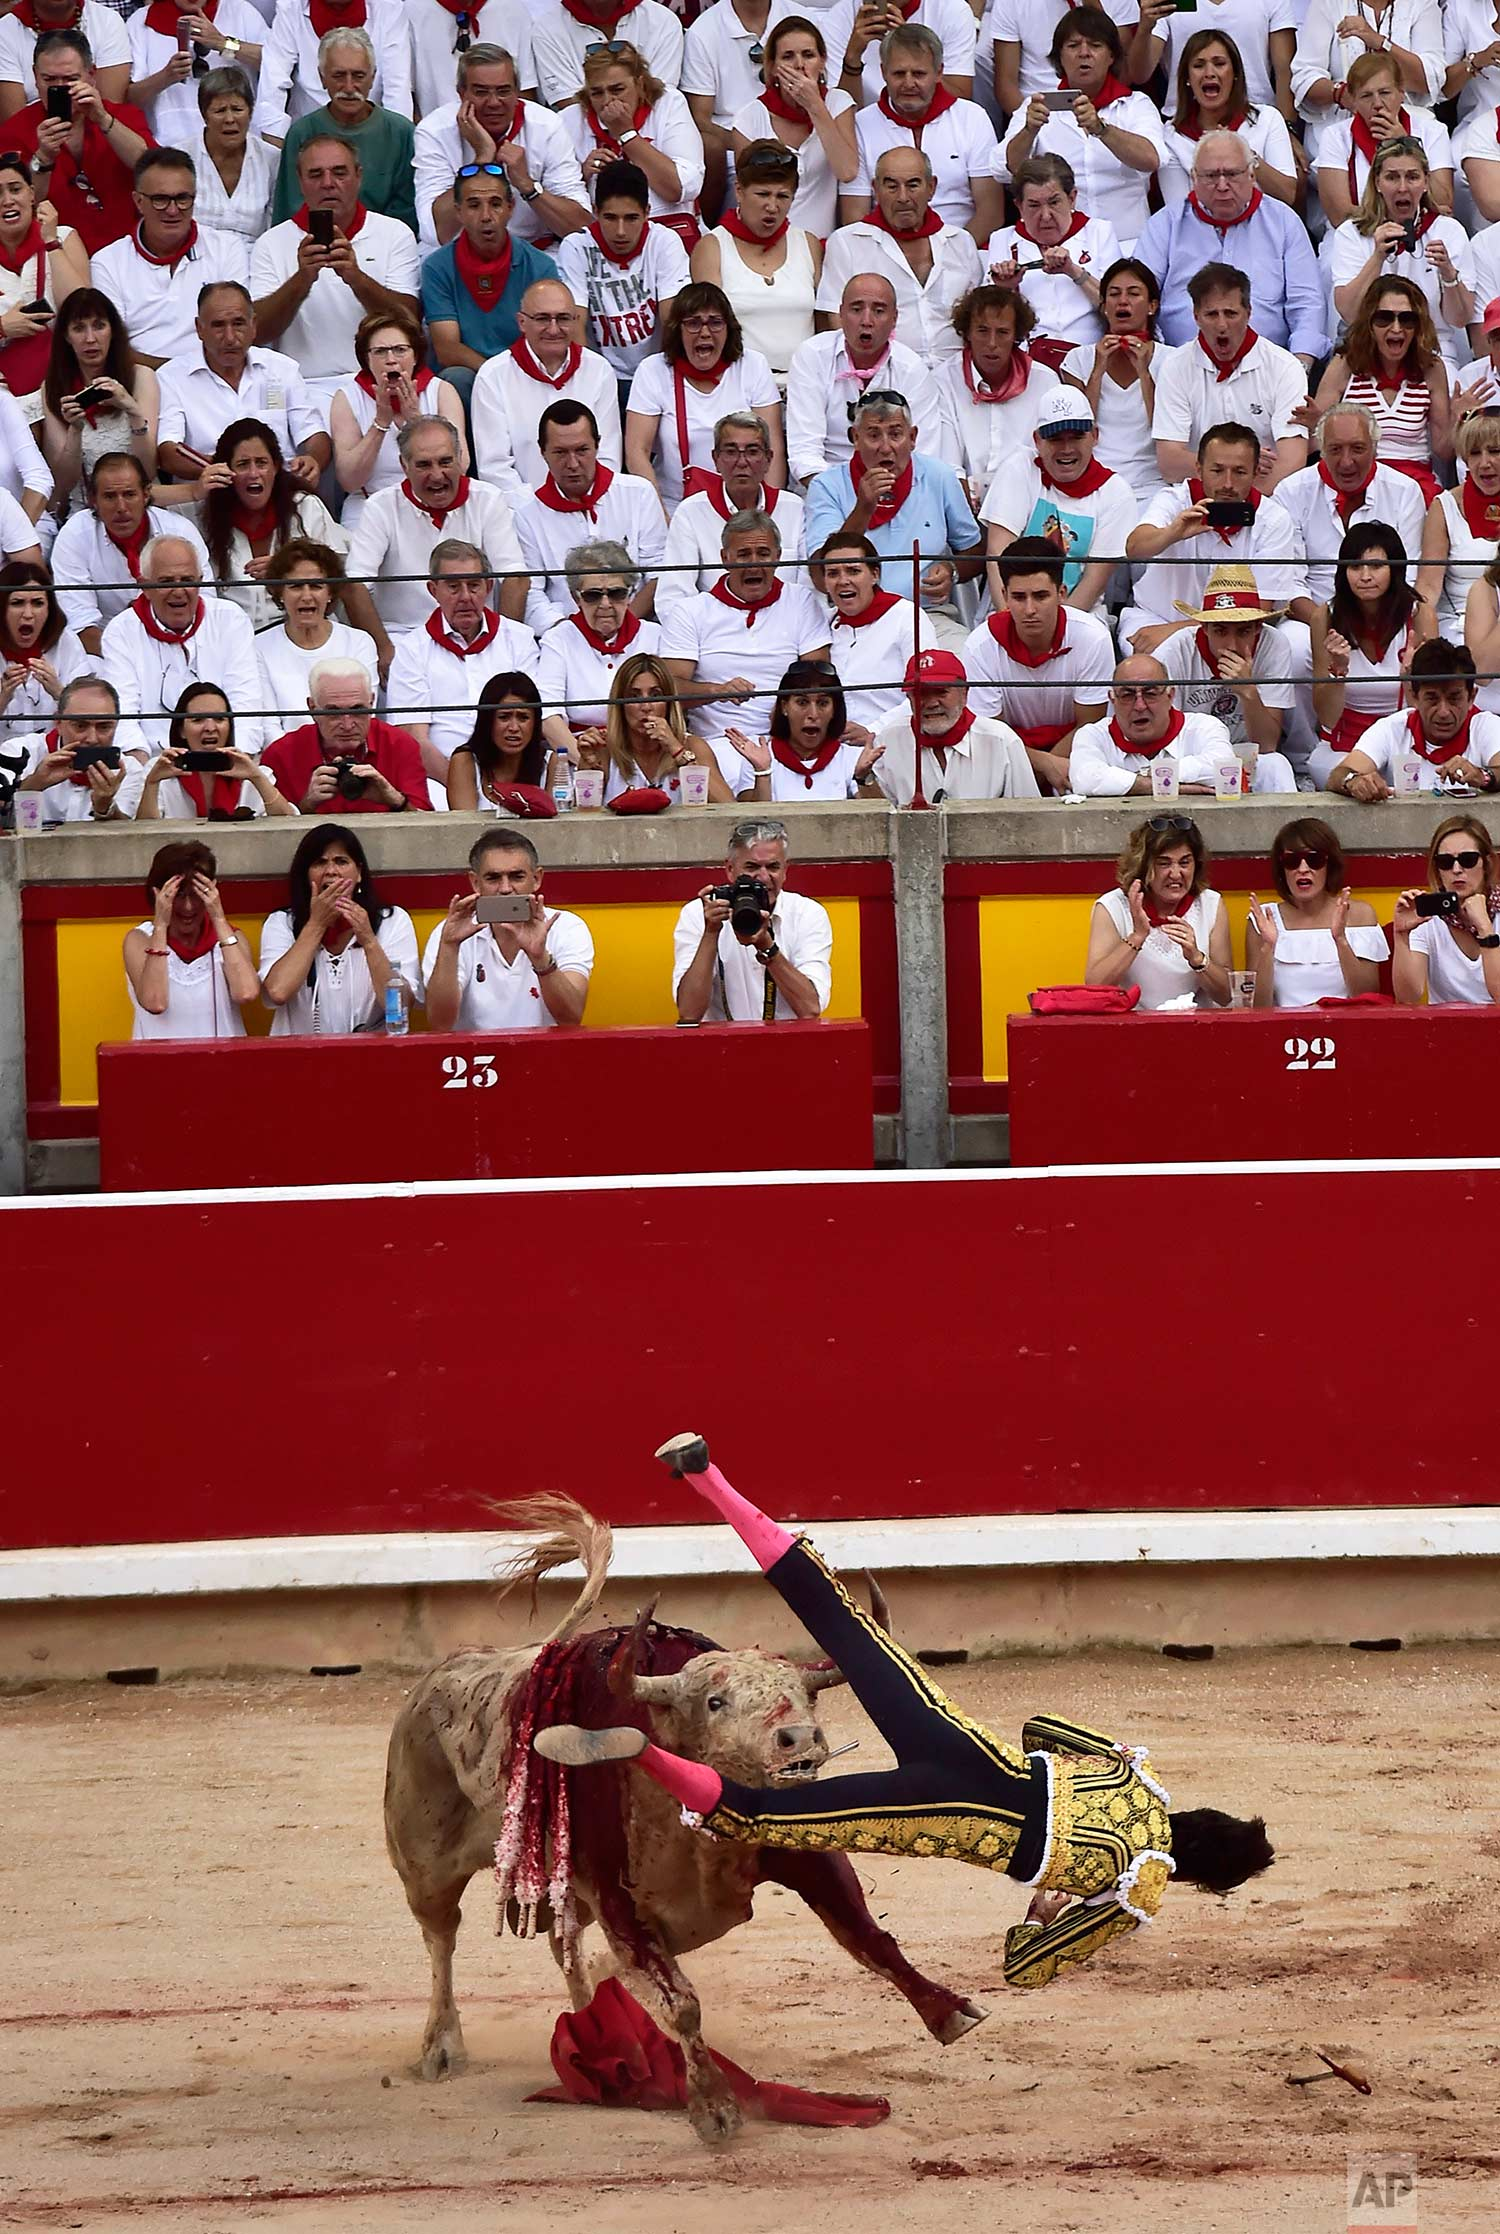 Spanish bullfighter Roca Rey is upended by a bull from the Jandilla ranch during a bullfight at the San Fermin Fiestas in Pamplona, Spain, Tuesday July 11, 2017. (AP Photo/Alvaro Barrientos)